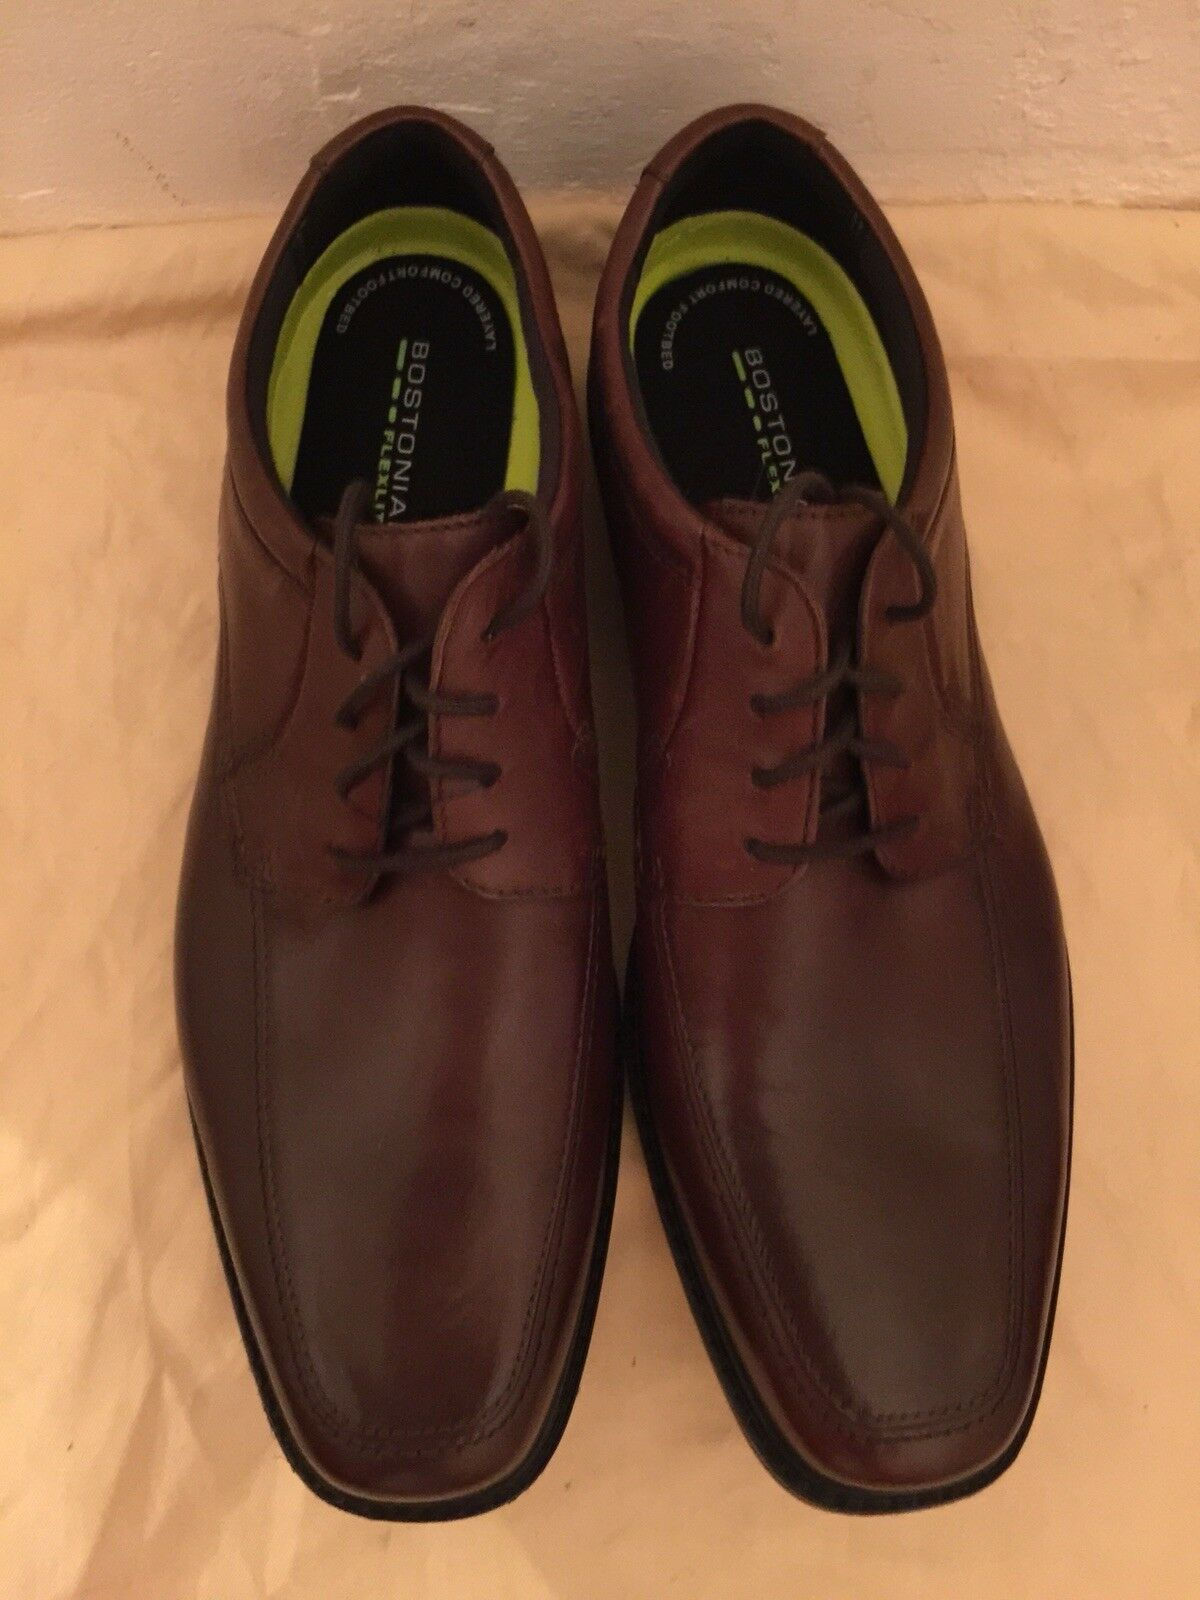 CLARKS Bostonian Ipswich Apron Lace Up Mens Brown Leather  Oxfords shoes